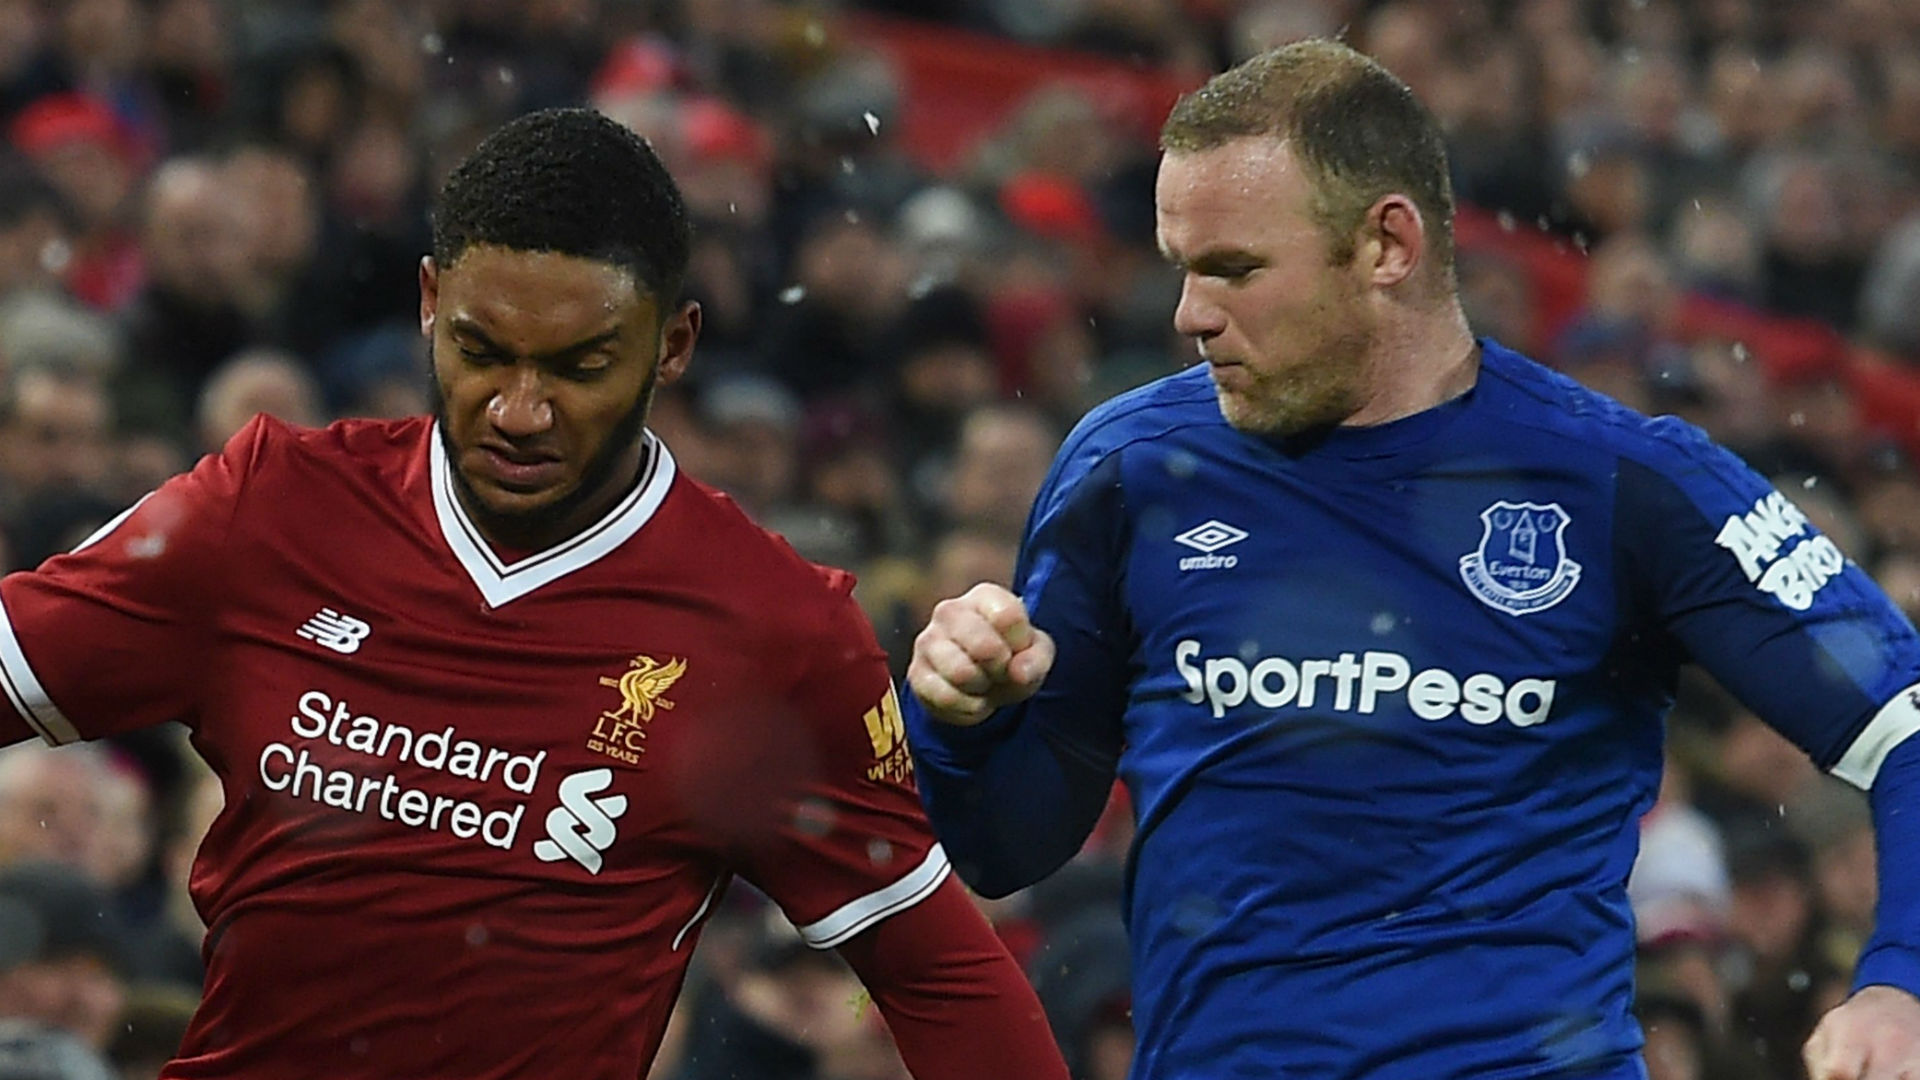 Liverpool Aiming To Maintain Derby Dominance Over Everton